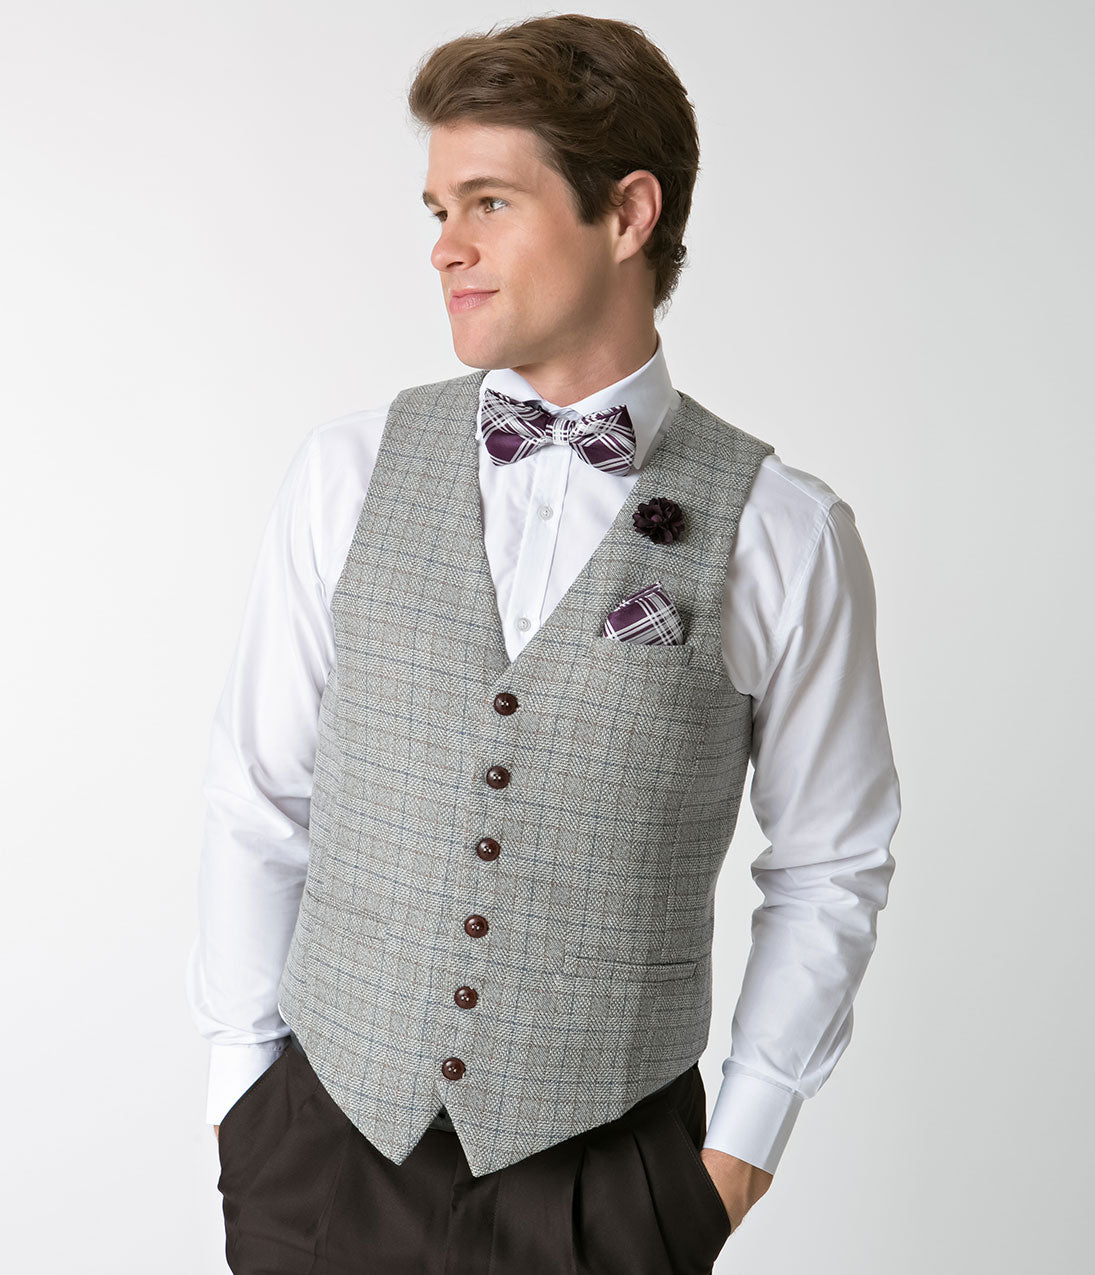 1940s Men's Fashion Clothing Styles Grey Tweed Mens Button Up Vest $58.00 AT vintagedancer.com